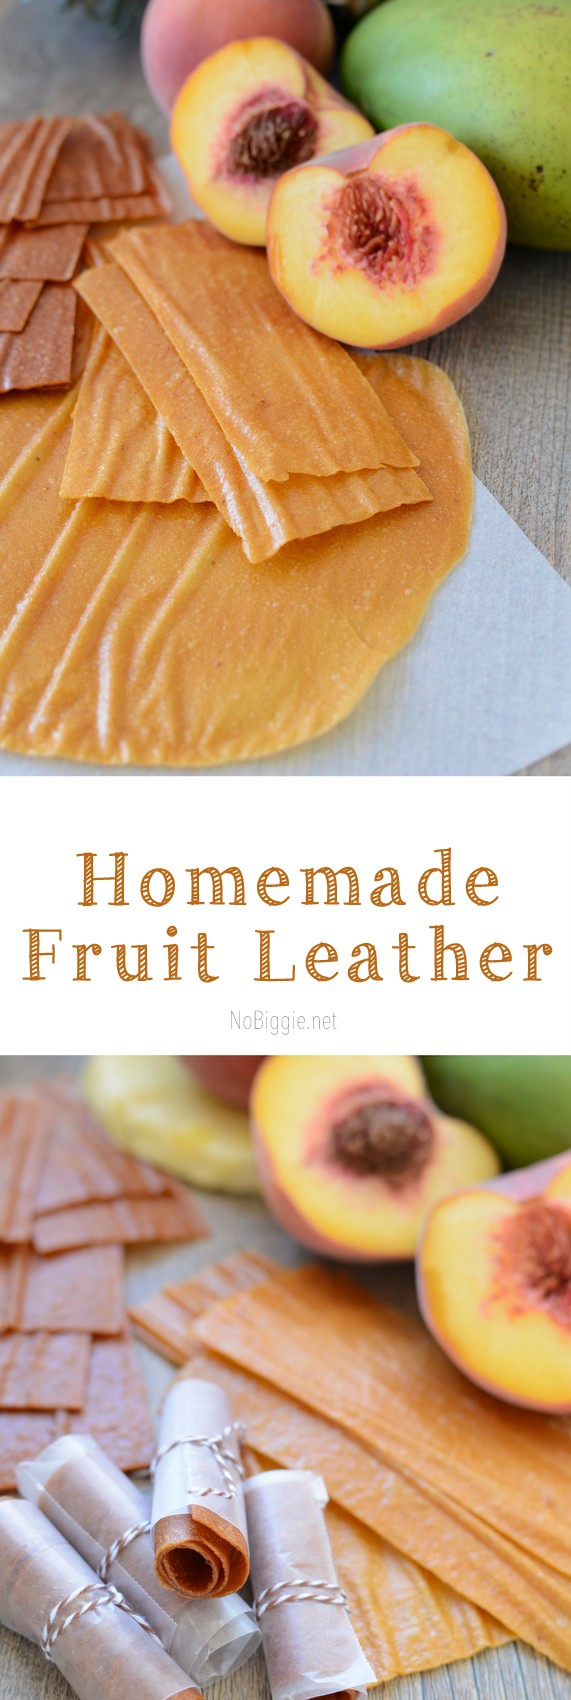 Homemade Fruit Leather with awesome flavor combinations   NoBiggie.net